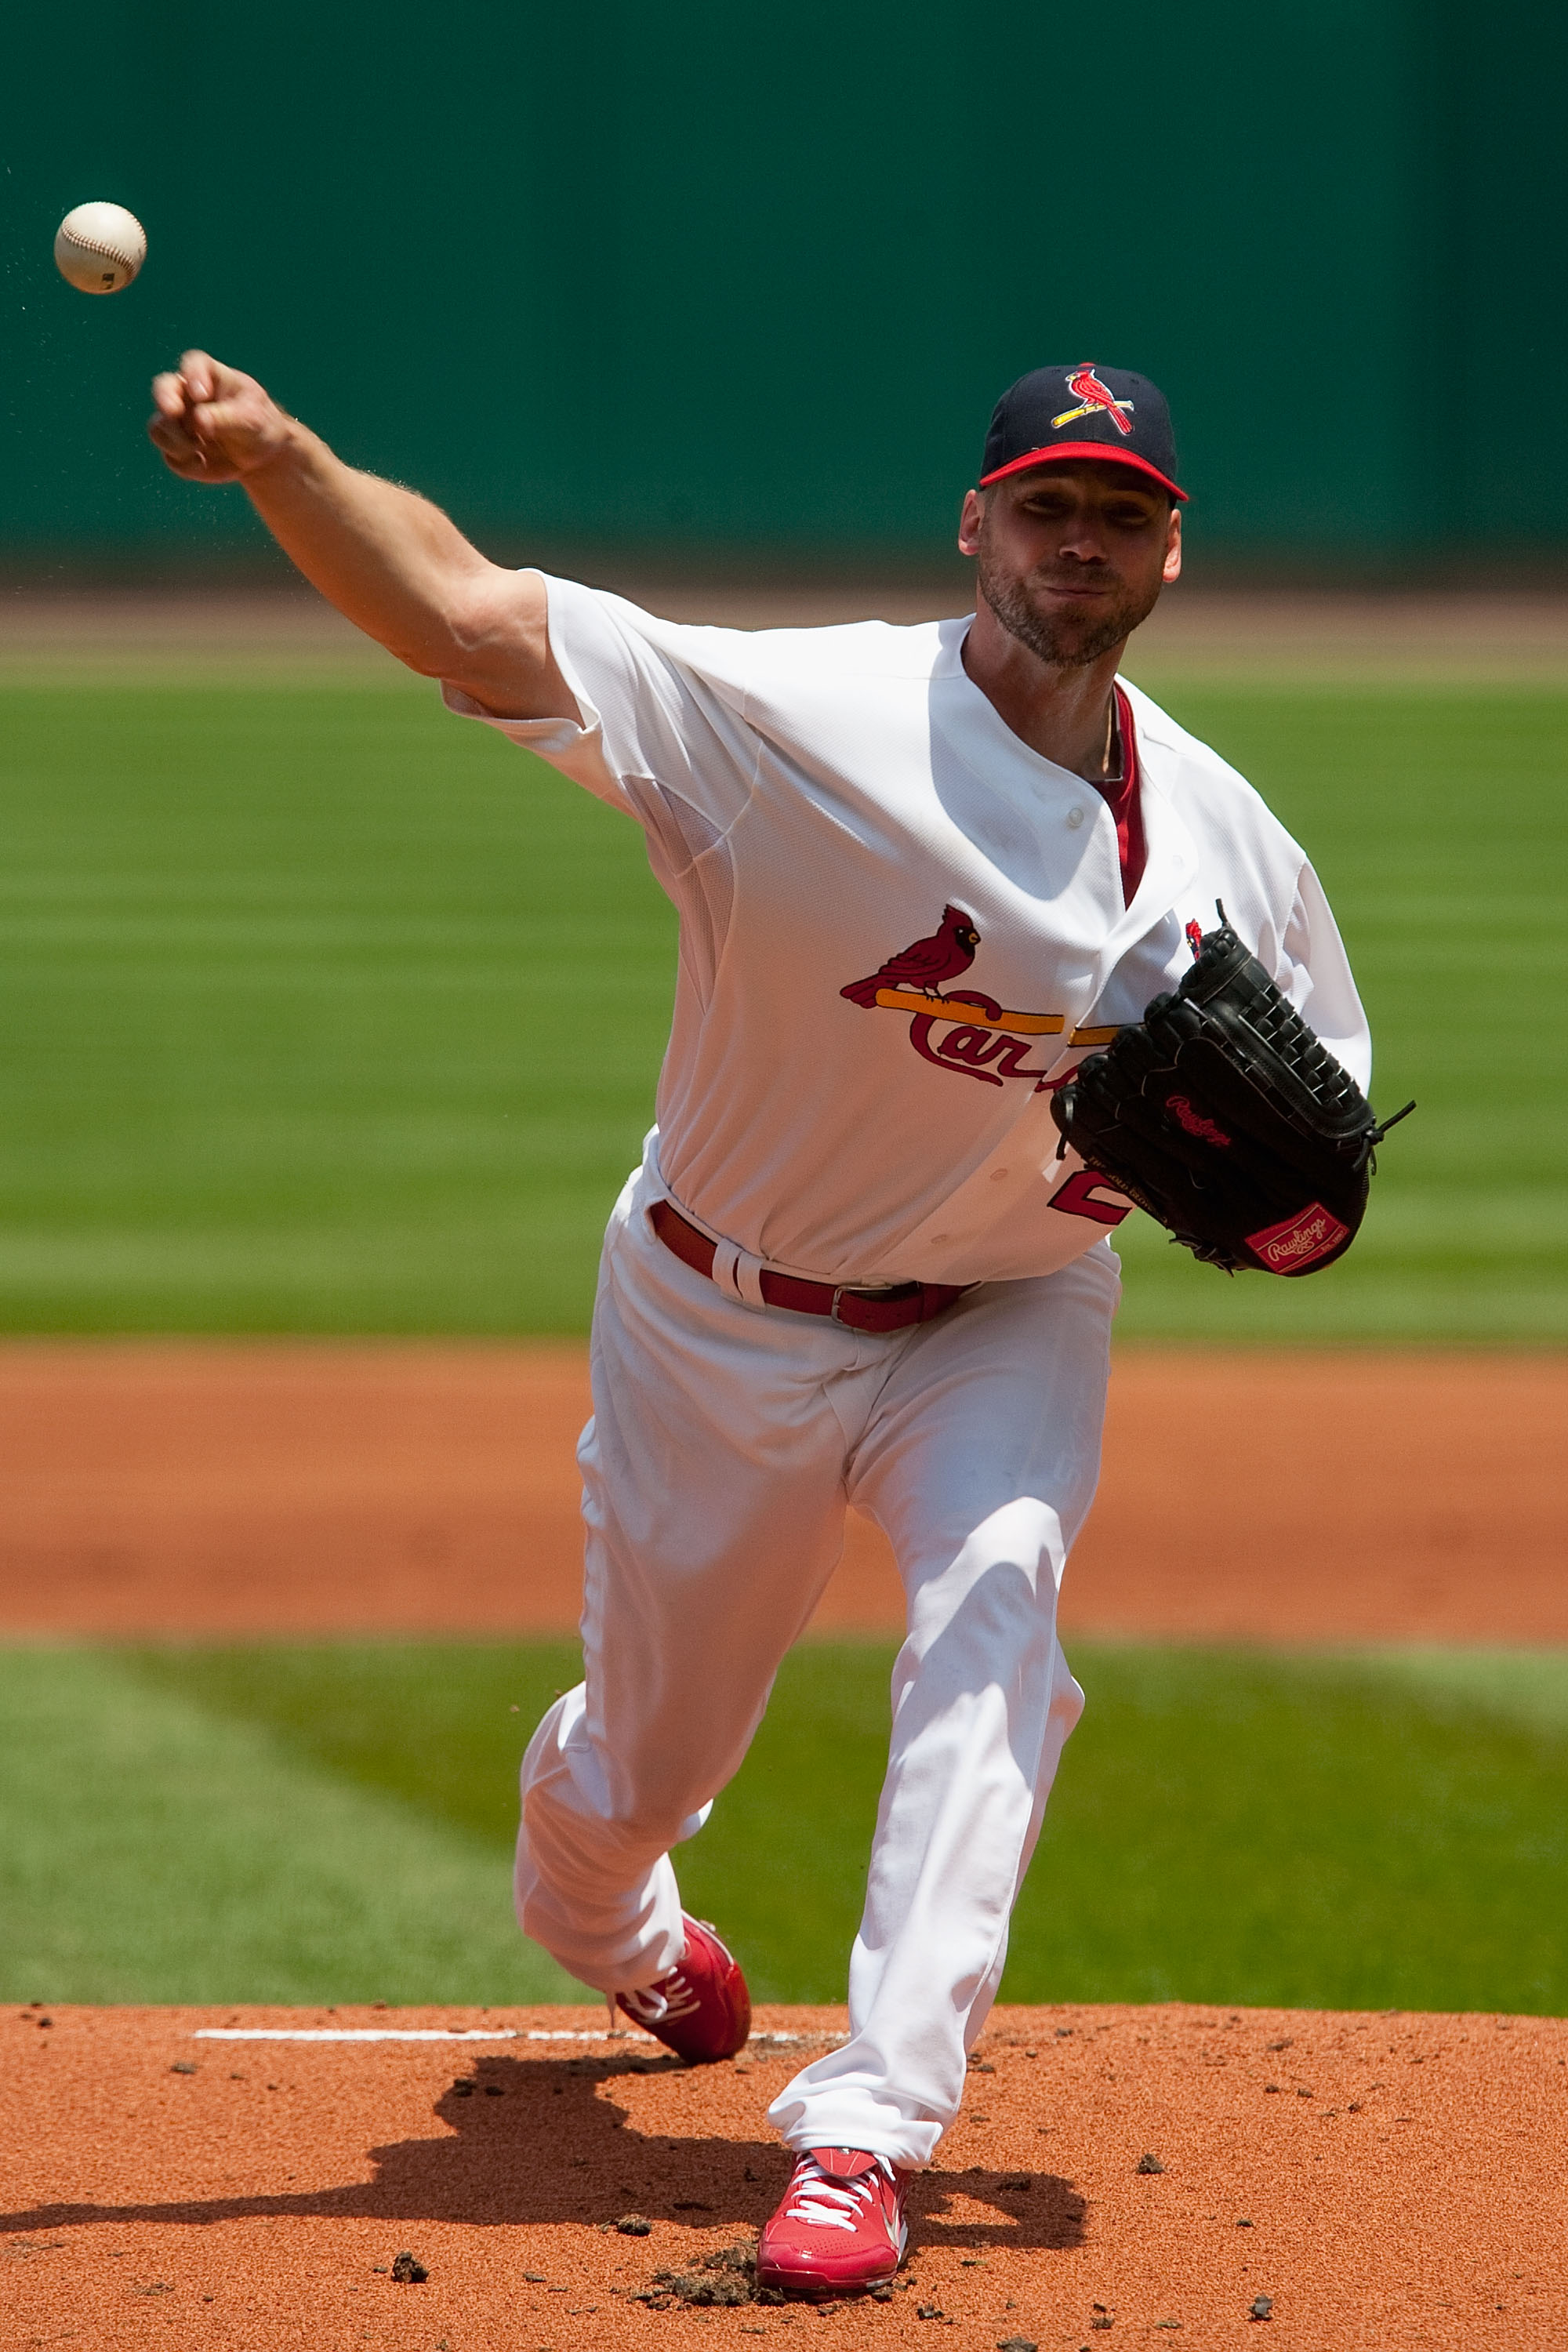 ST. LOUIS - MAY 23: Starting pitcher Chris Carpenter #29 of the St. Louis Cardinals throws against the Los Angeles Angels of Anaheim at Busch Stadium on May 23, 2010 in St. Louis, Missouri.  The Cardinals beat the Angels 6-5 in 10 innings.  (Photo by Dili